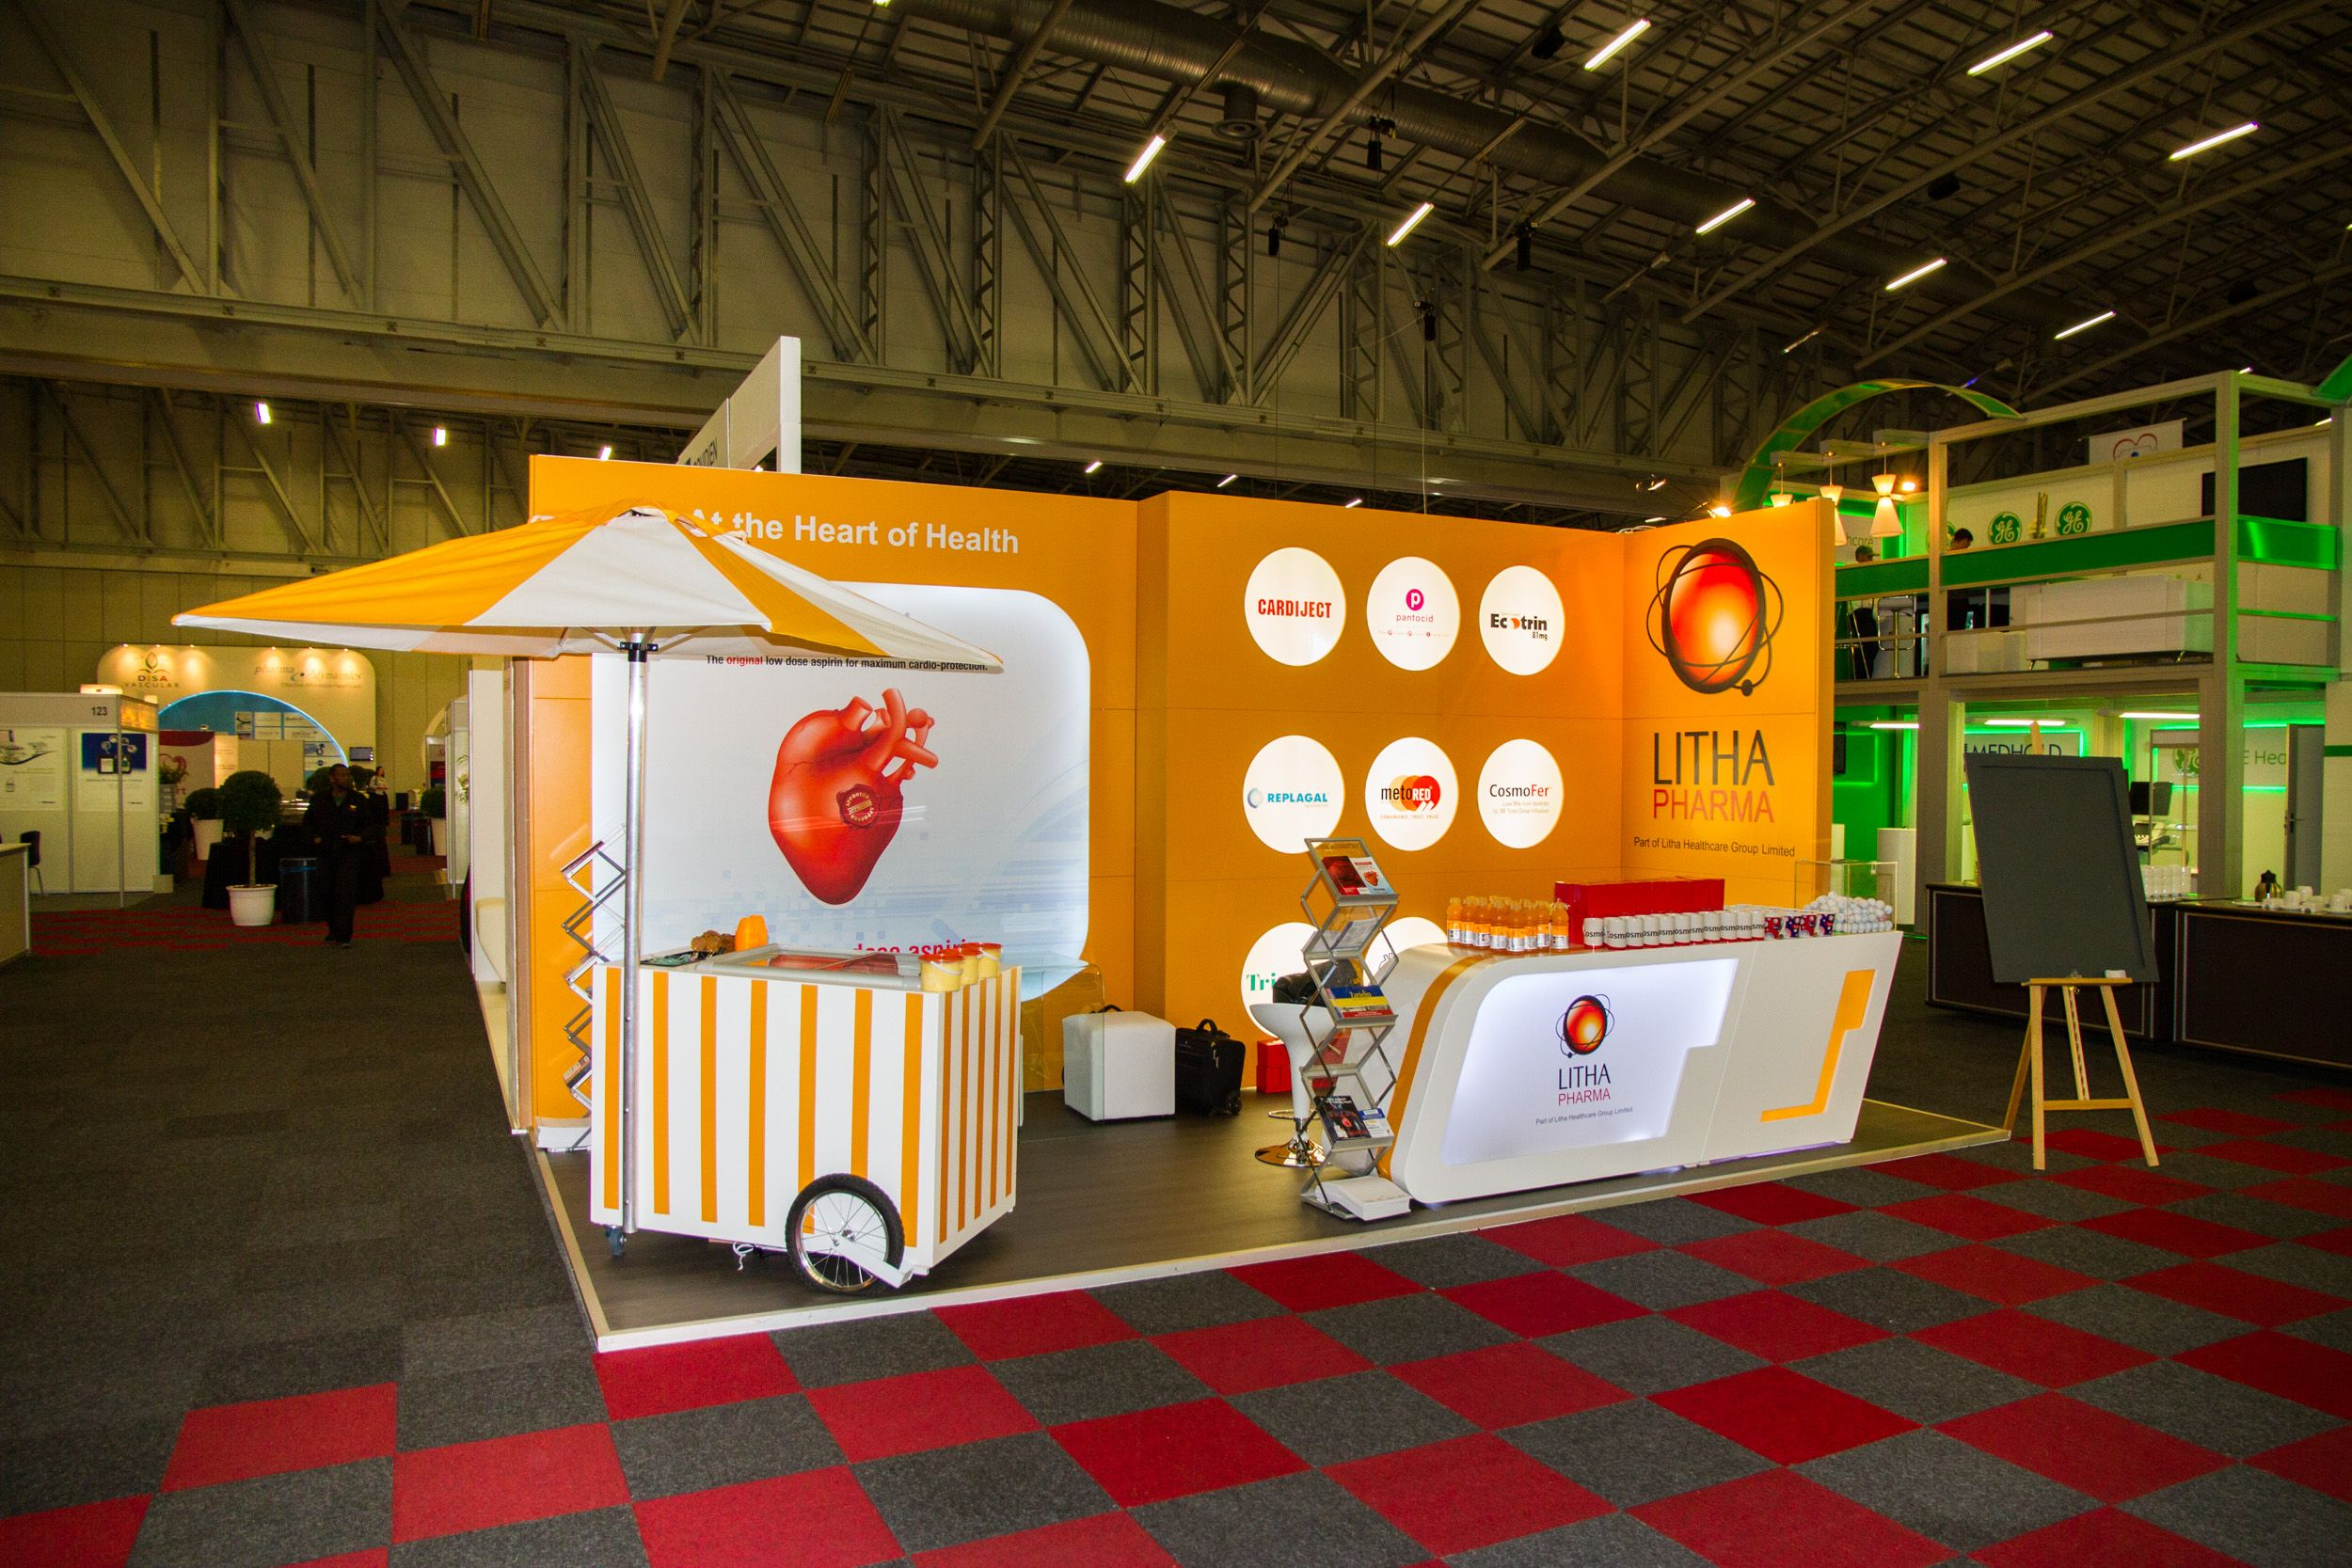 Exhibition Stand Design Cape Town : Litha pharma th world paediatric cardiology congress